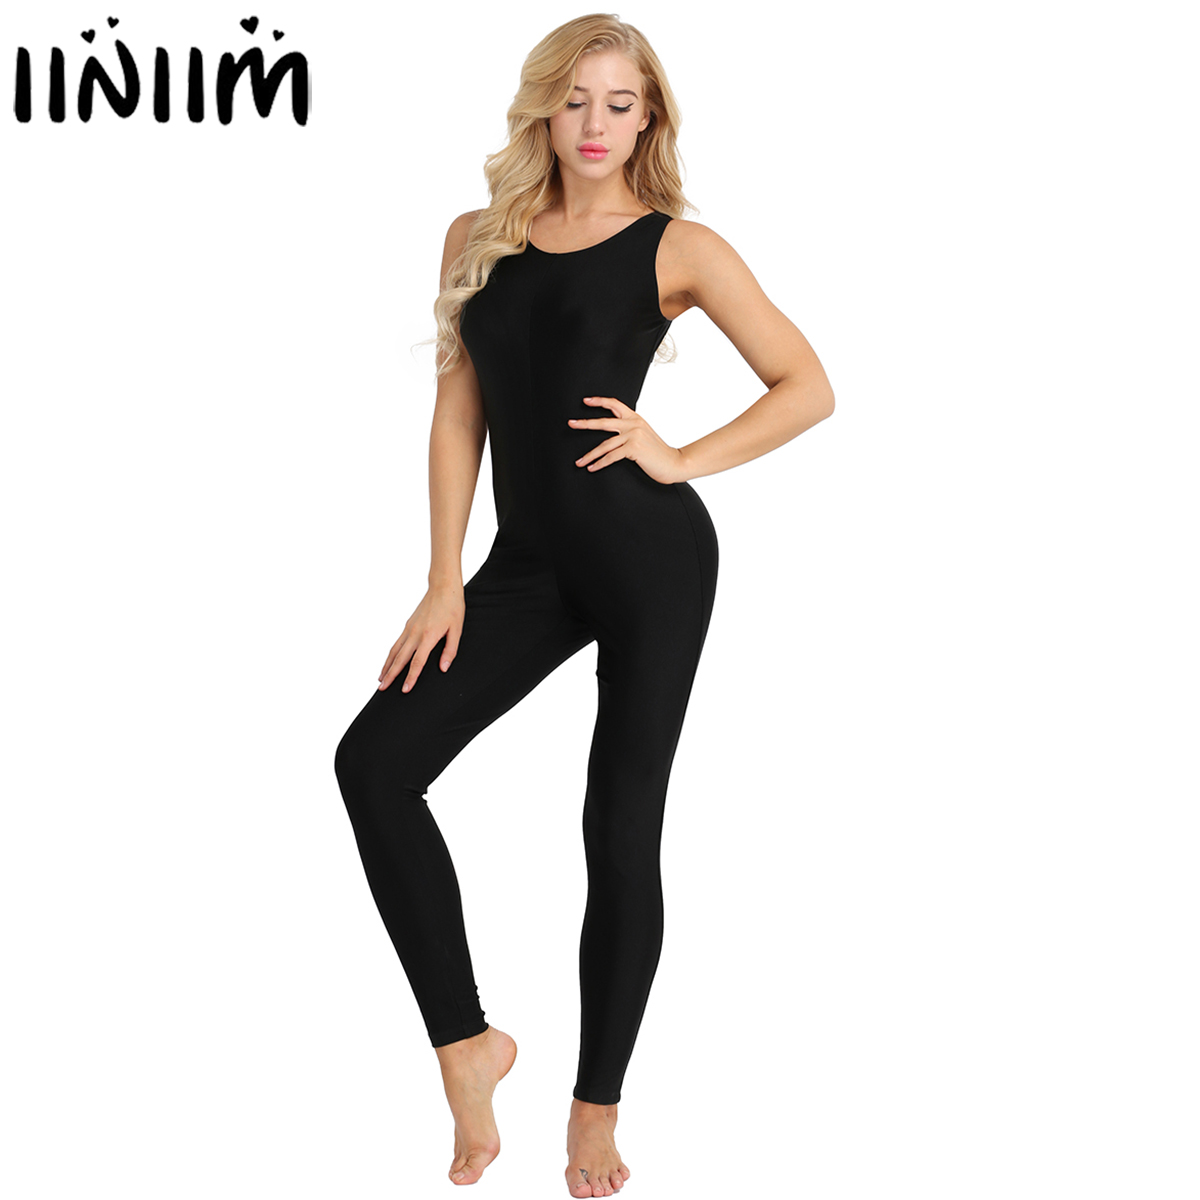 Womens Adult Bodycon Sexy Clubwear Footless Stretchy Solid Tank Unitard Dance Practice Leotard Bodysuit Playsuits Costumes